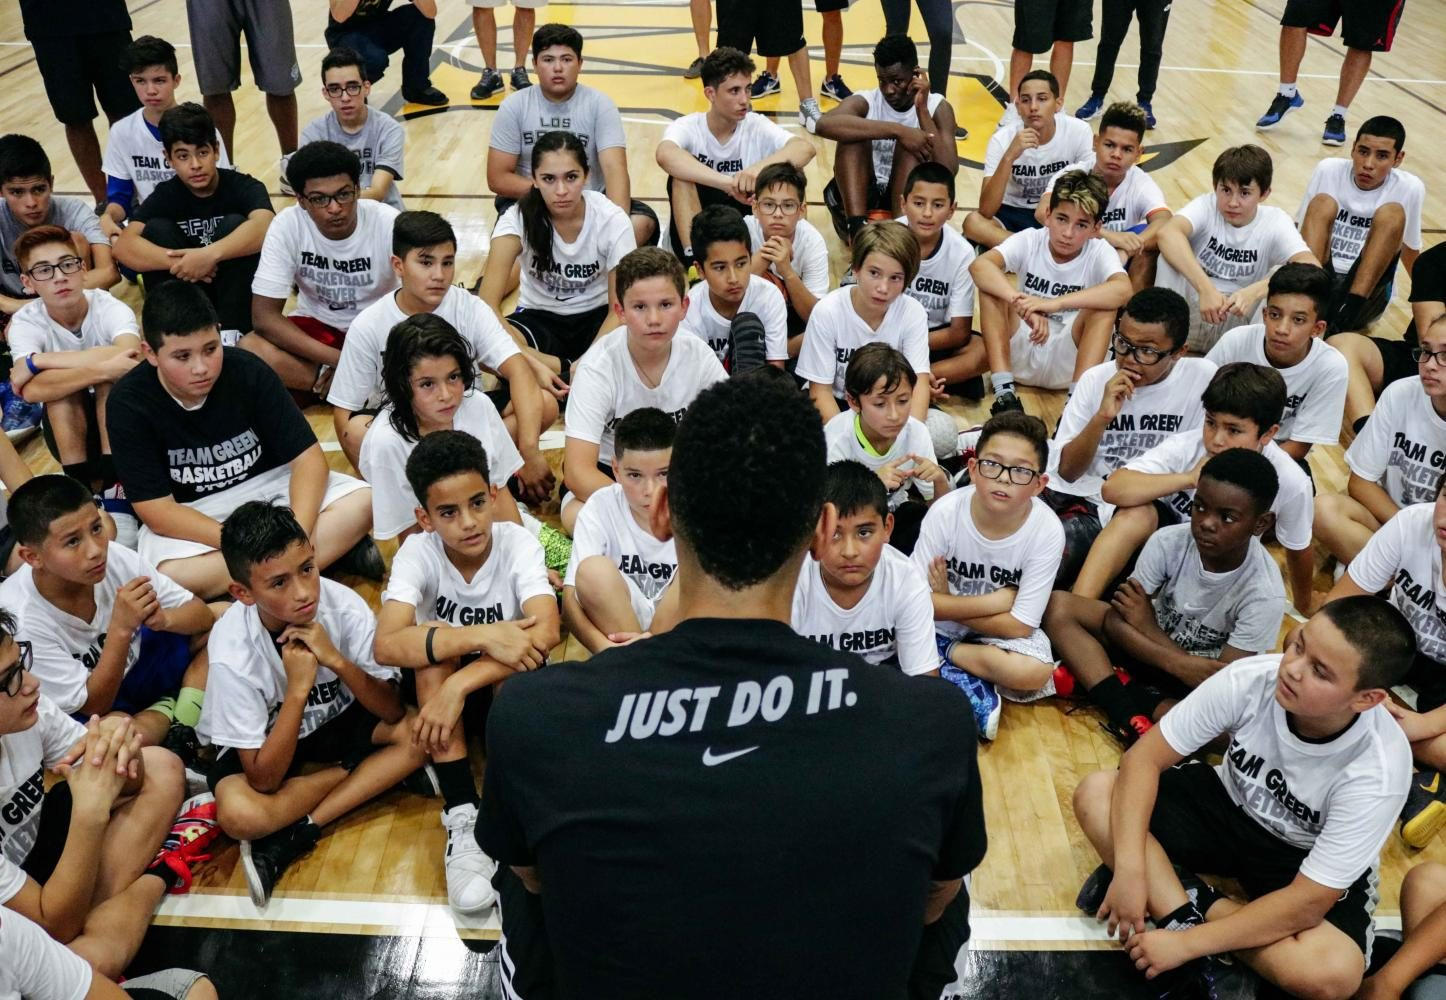 San+Antonio+Spurs+player+Danny+Green+held+a+Q%26A+with+young+basketball+players+during+his+Basketball+Skills+Camp.